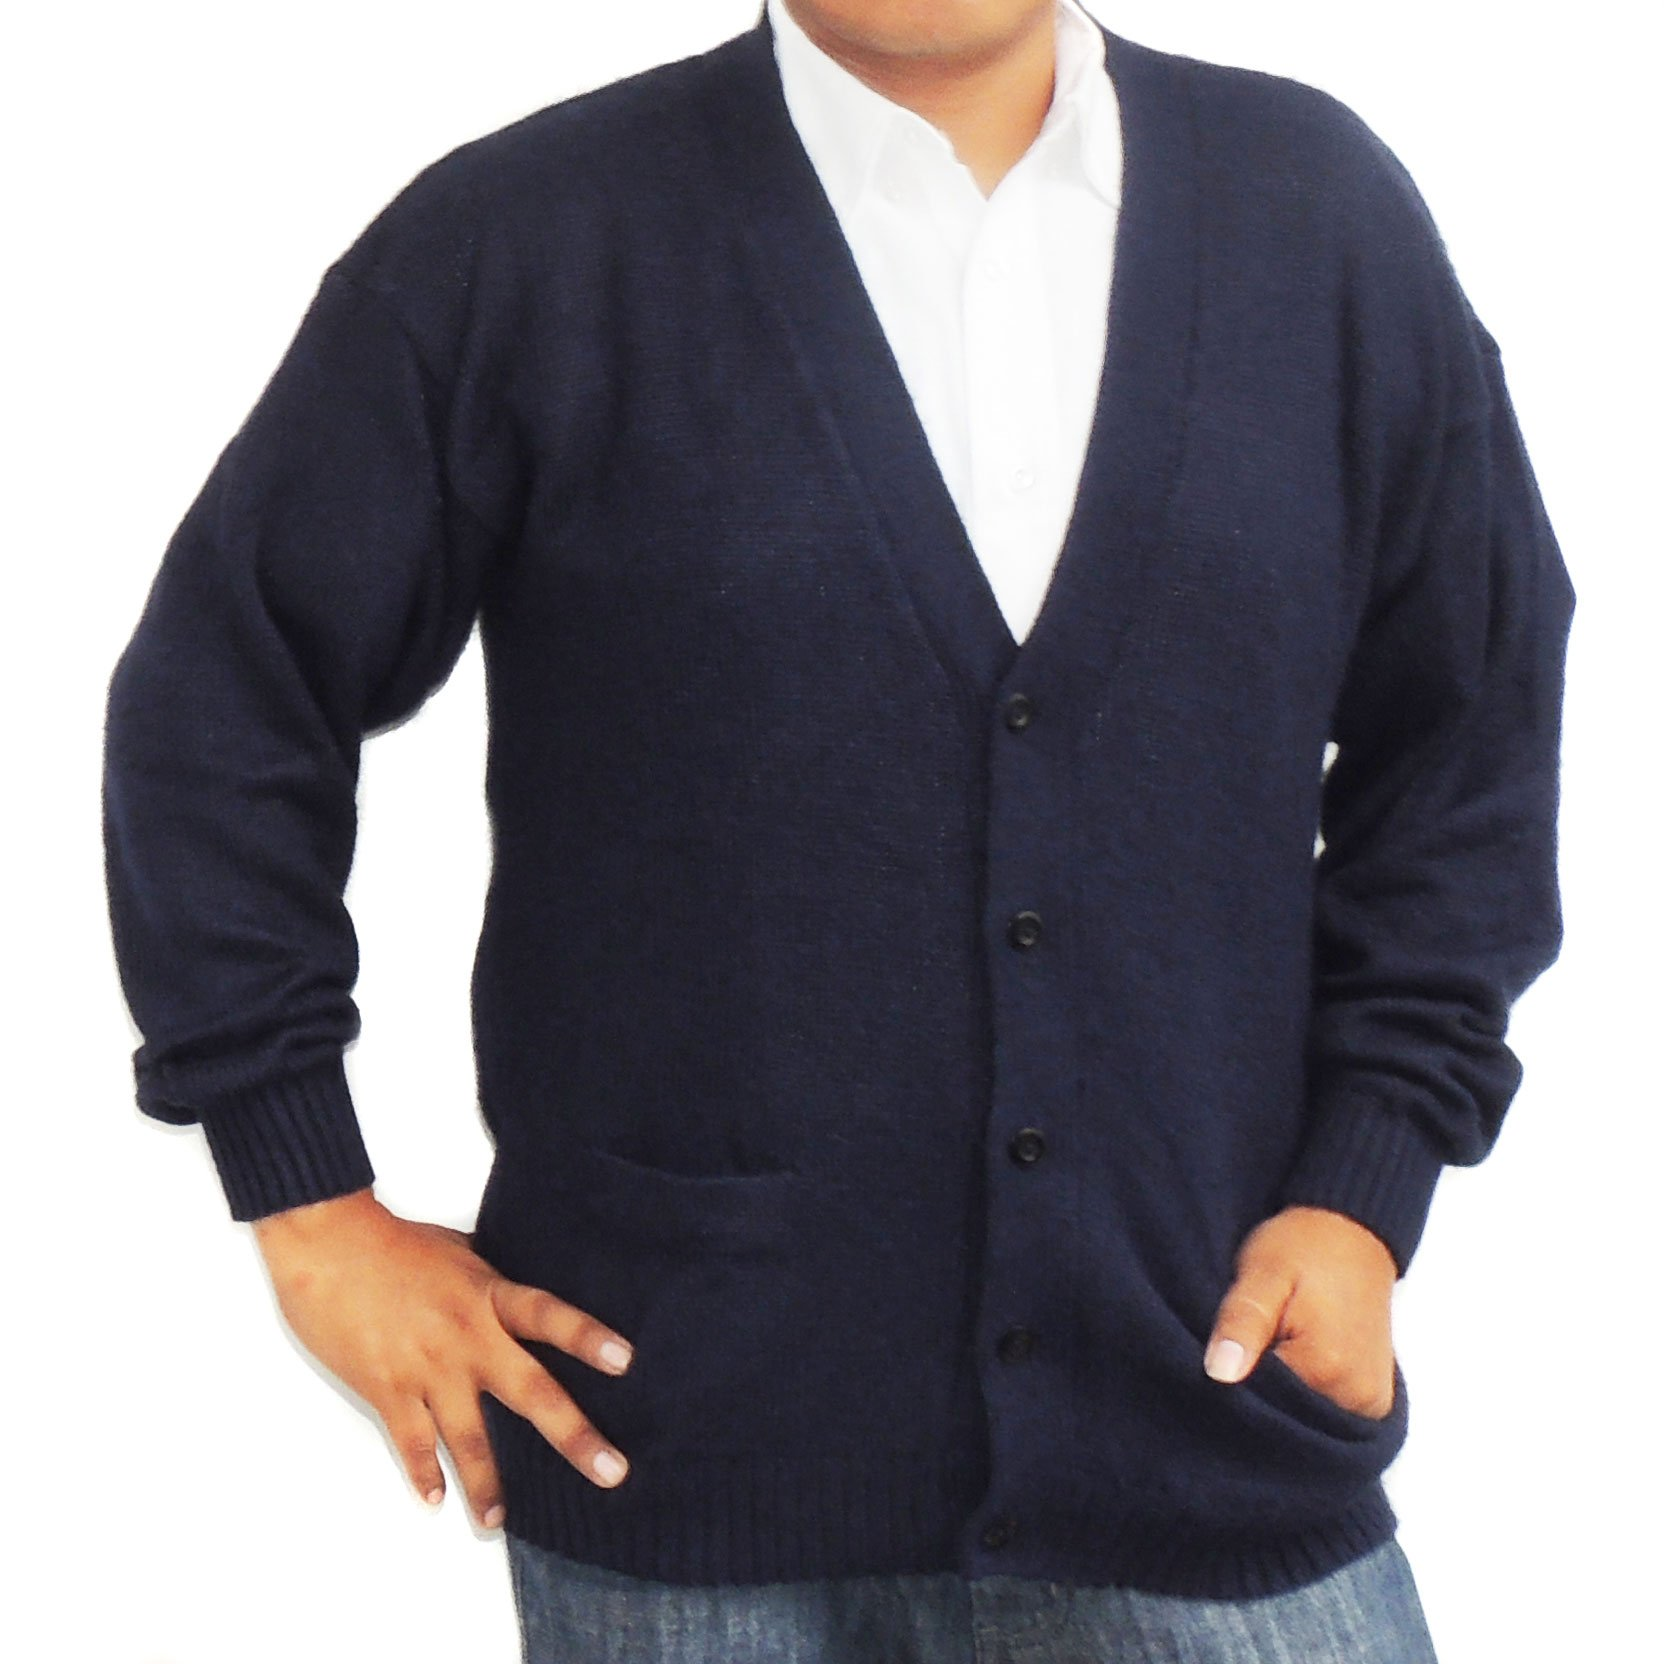 ALPACA CARDIGAN GOLF SWEATER JERSEY V neck buttons and Pockets made in PERU NAVY BUE M by CELITAS DESIGN (Image #1)